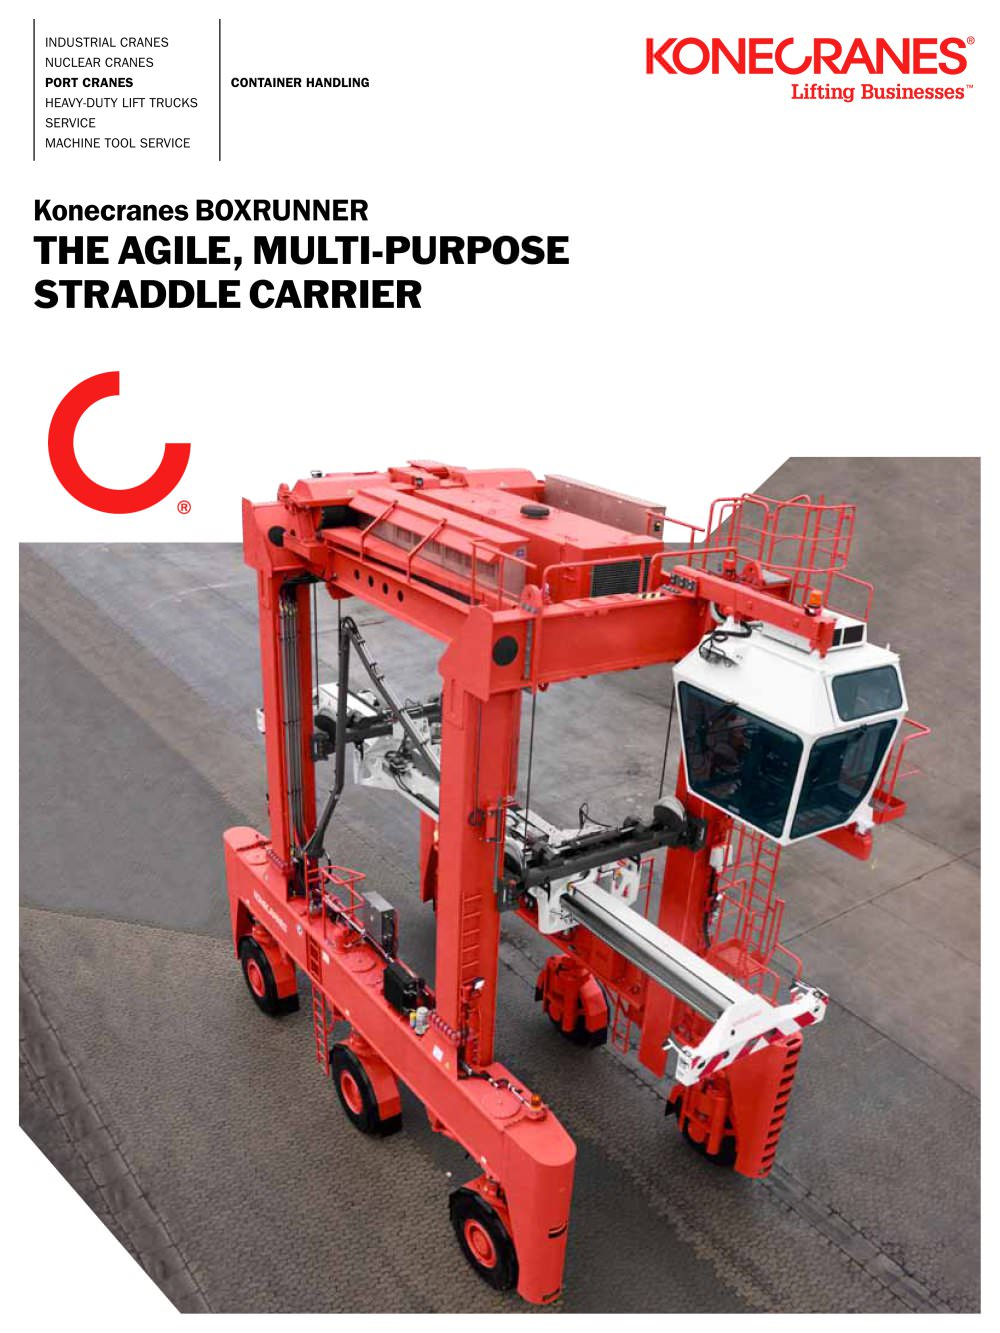 Boxrunner the agile multi purpose straddle carrier 1 20 pages